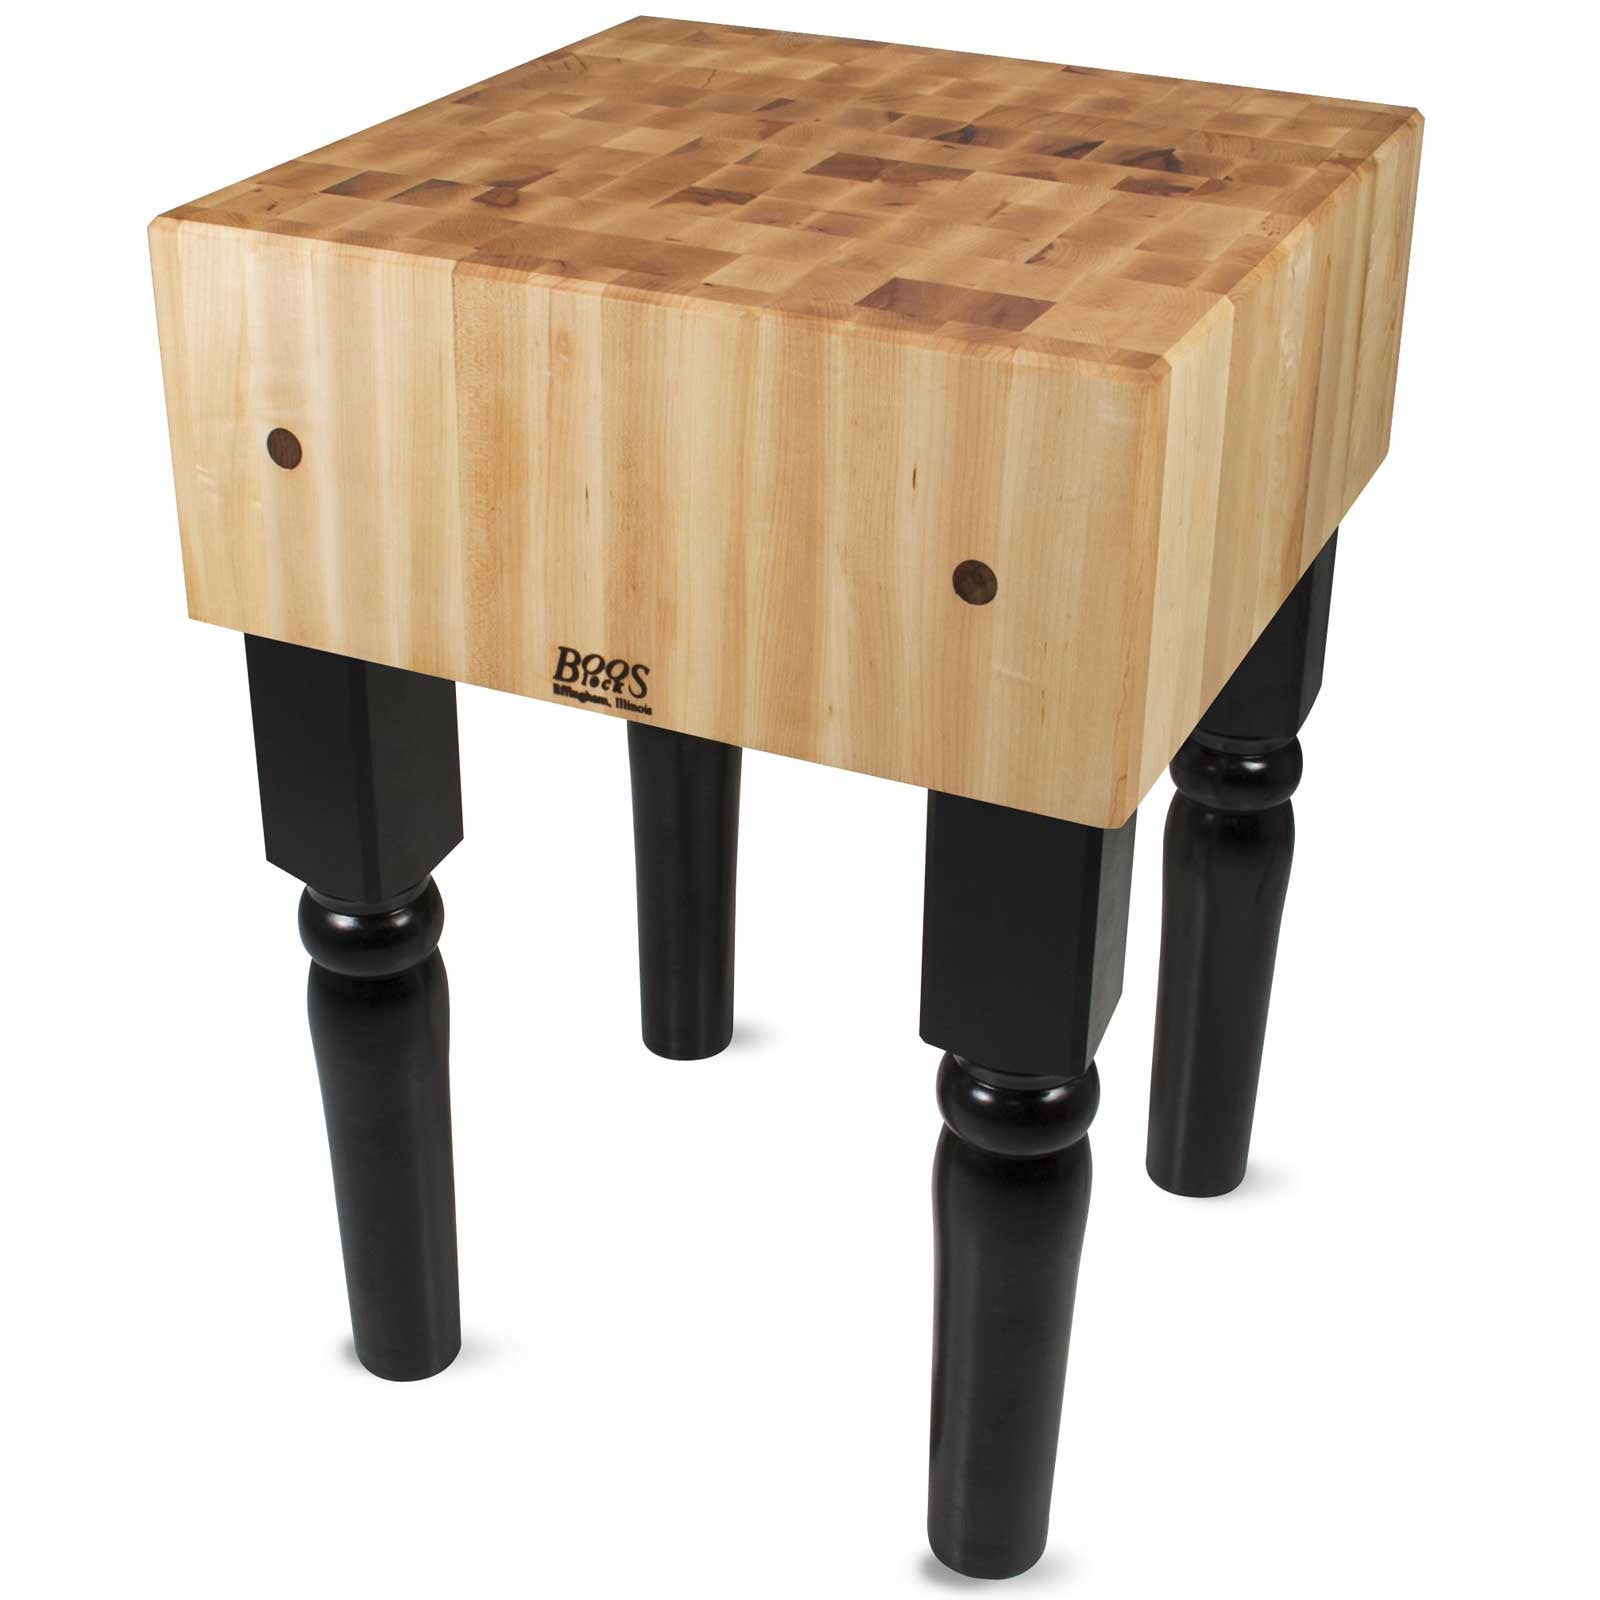 "John Boos 24"" x 24"" x 10"" Maple Top AB Butcher Block"